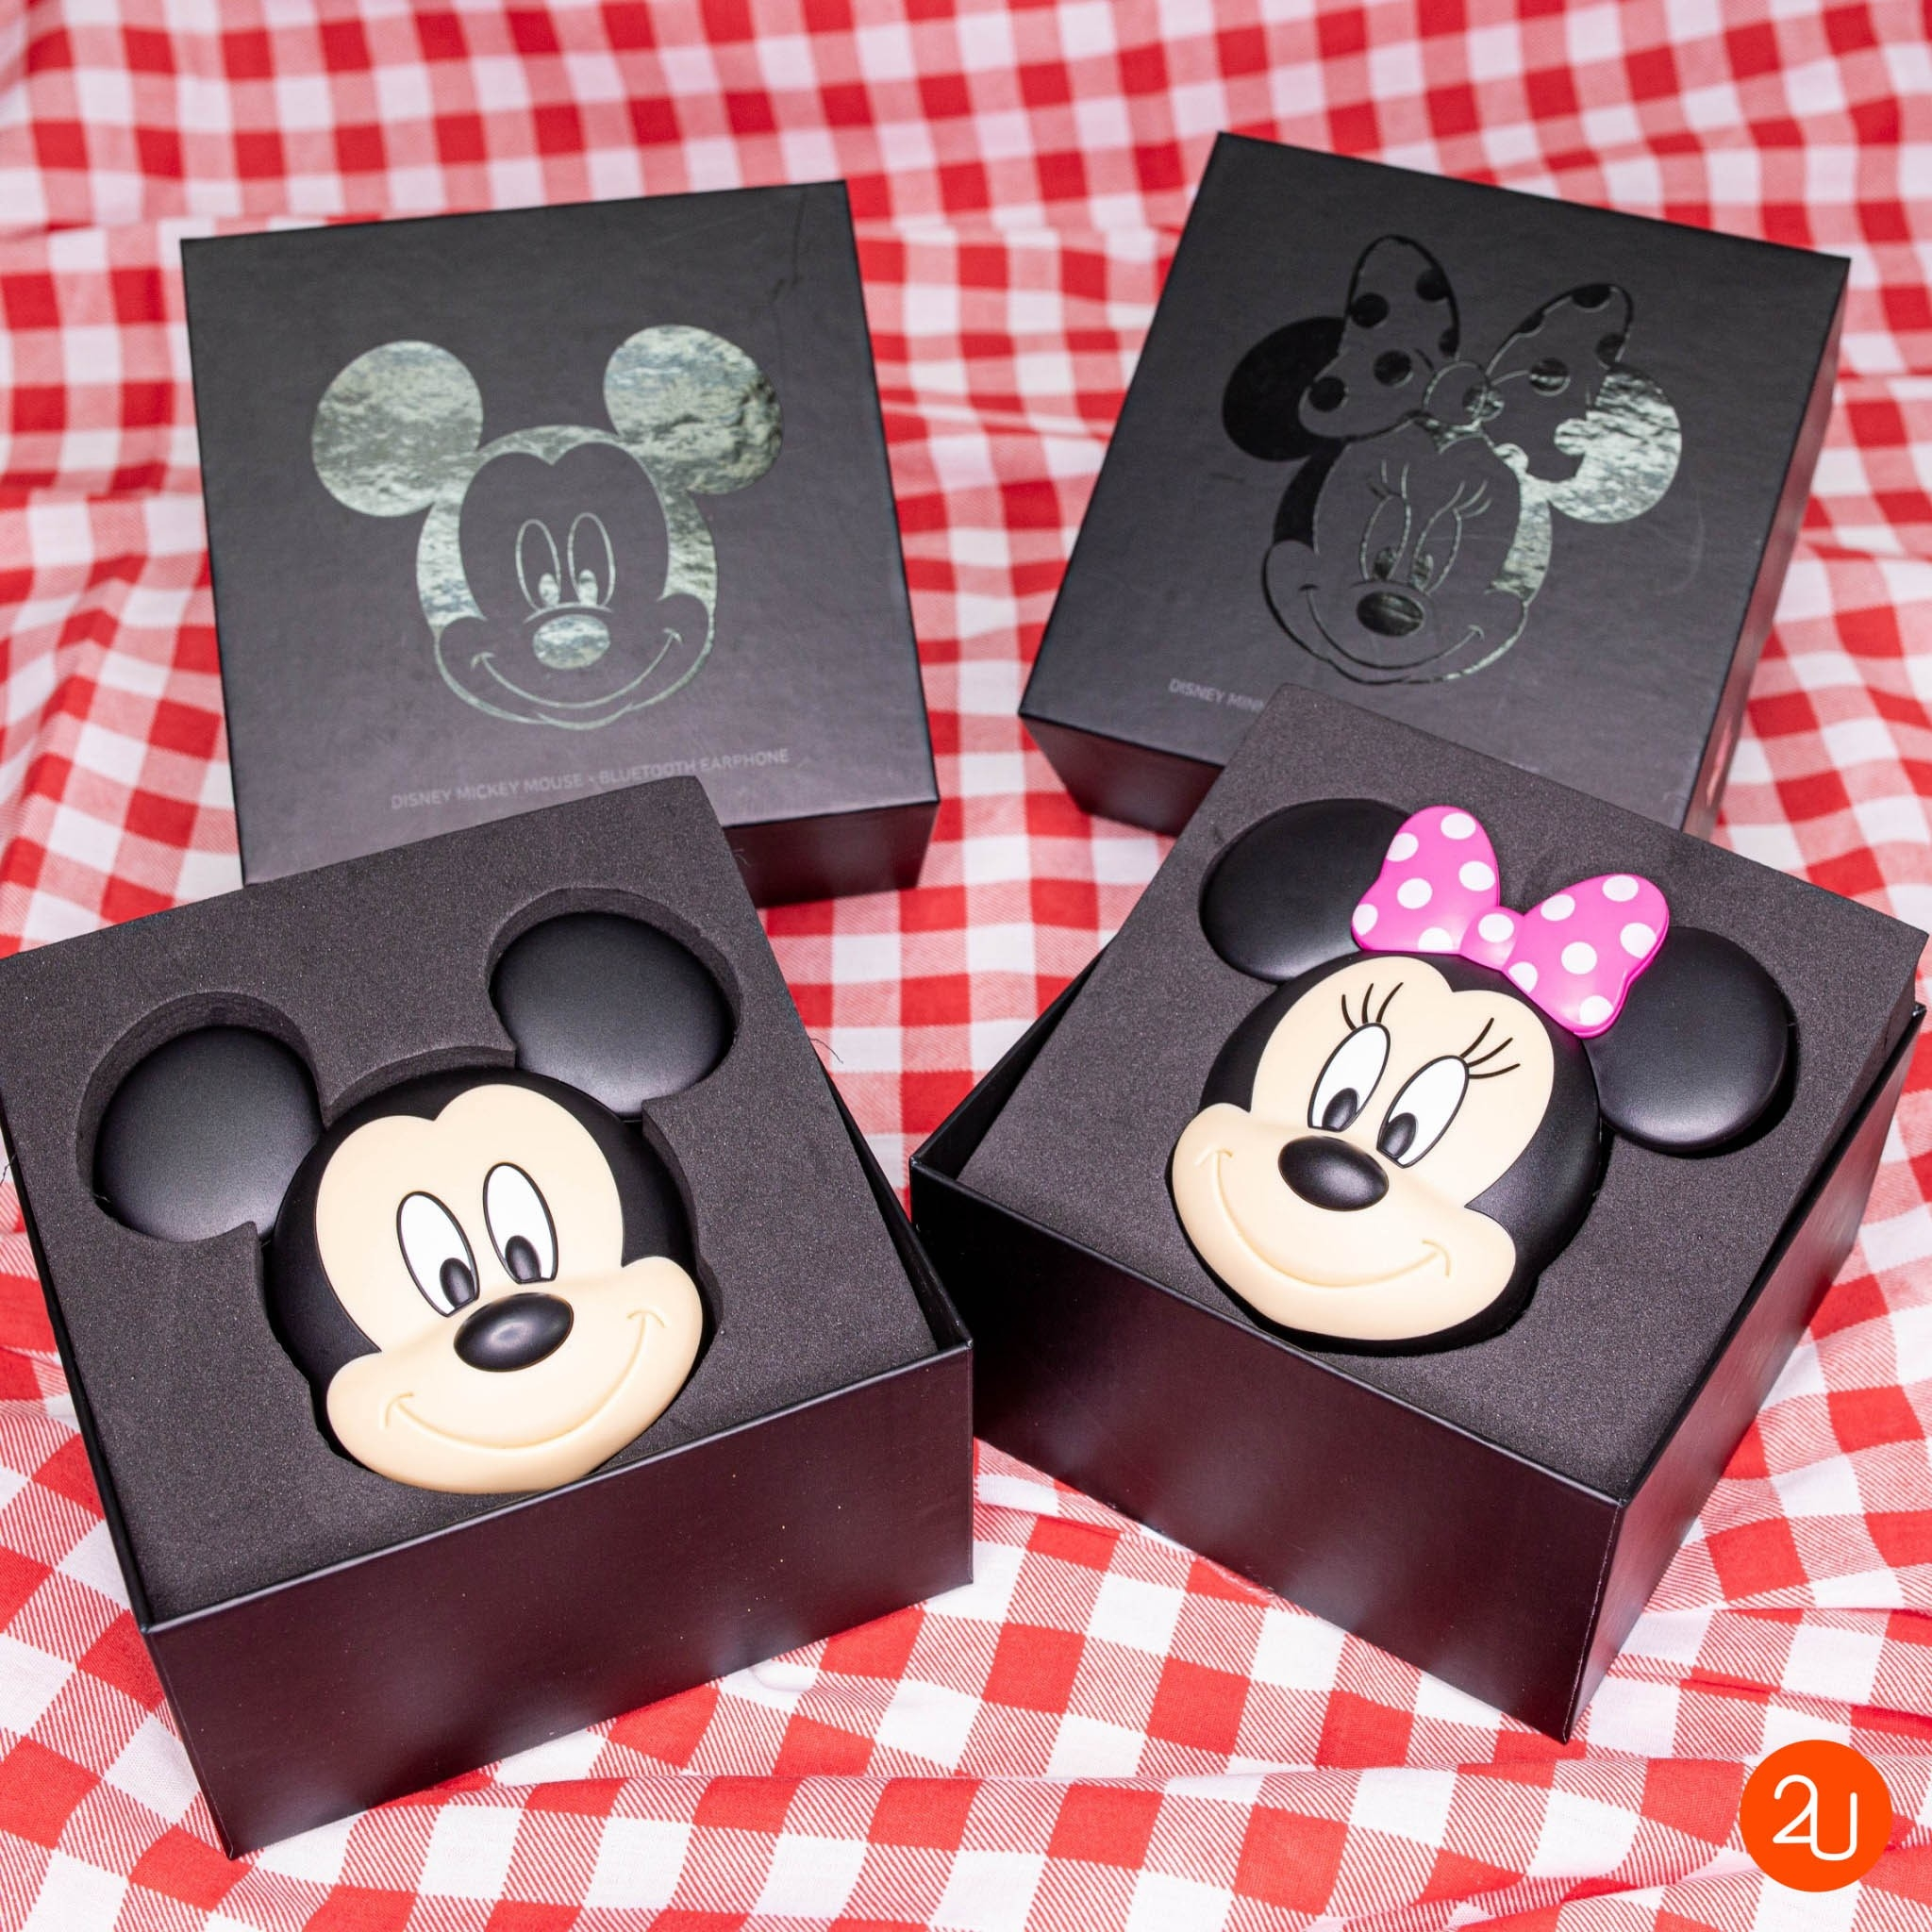 Baskin Robbins Limited Edition Disney Mickey Mouse Bluetooth earpiece (1)